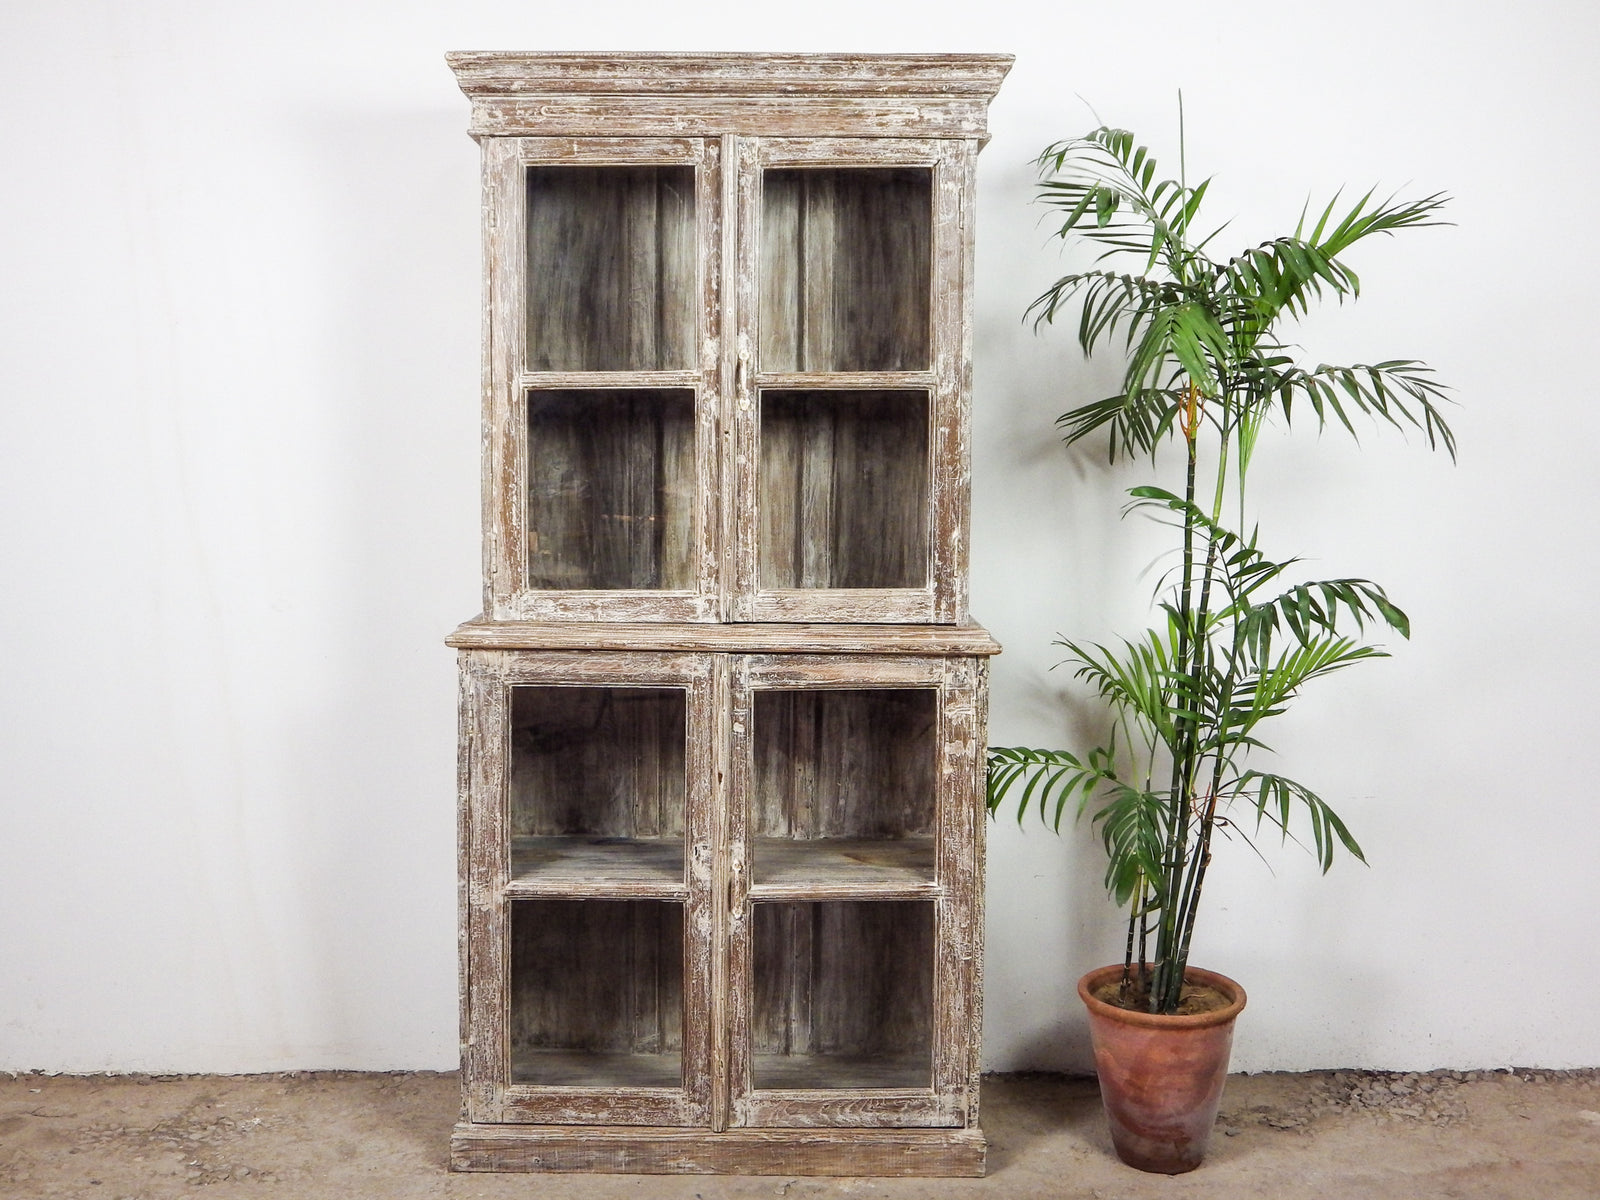 Rare Vintage Antique Rustic Metal Wooden Cupboard Cabinet Industrial (REF465)